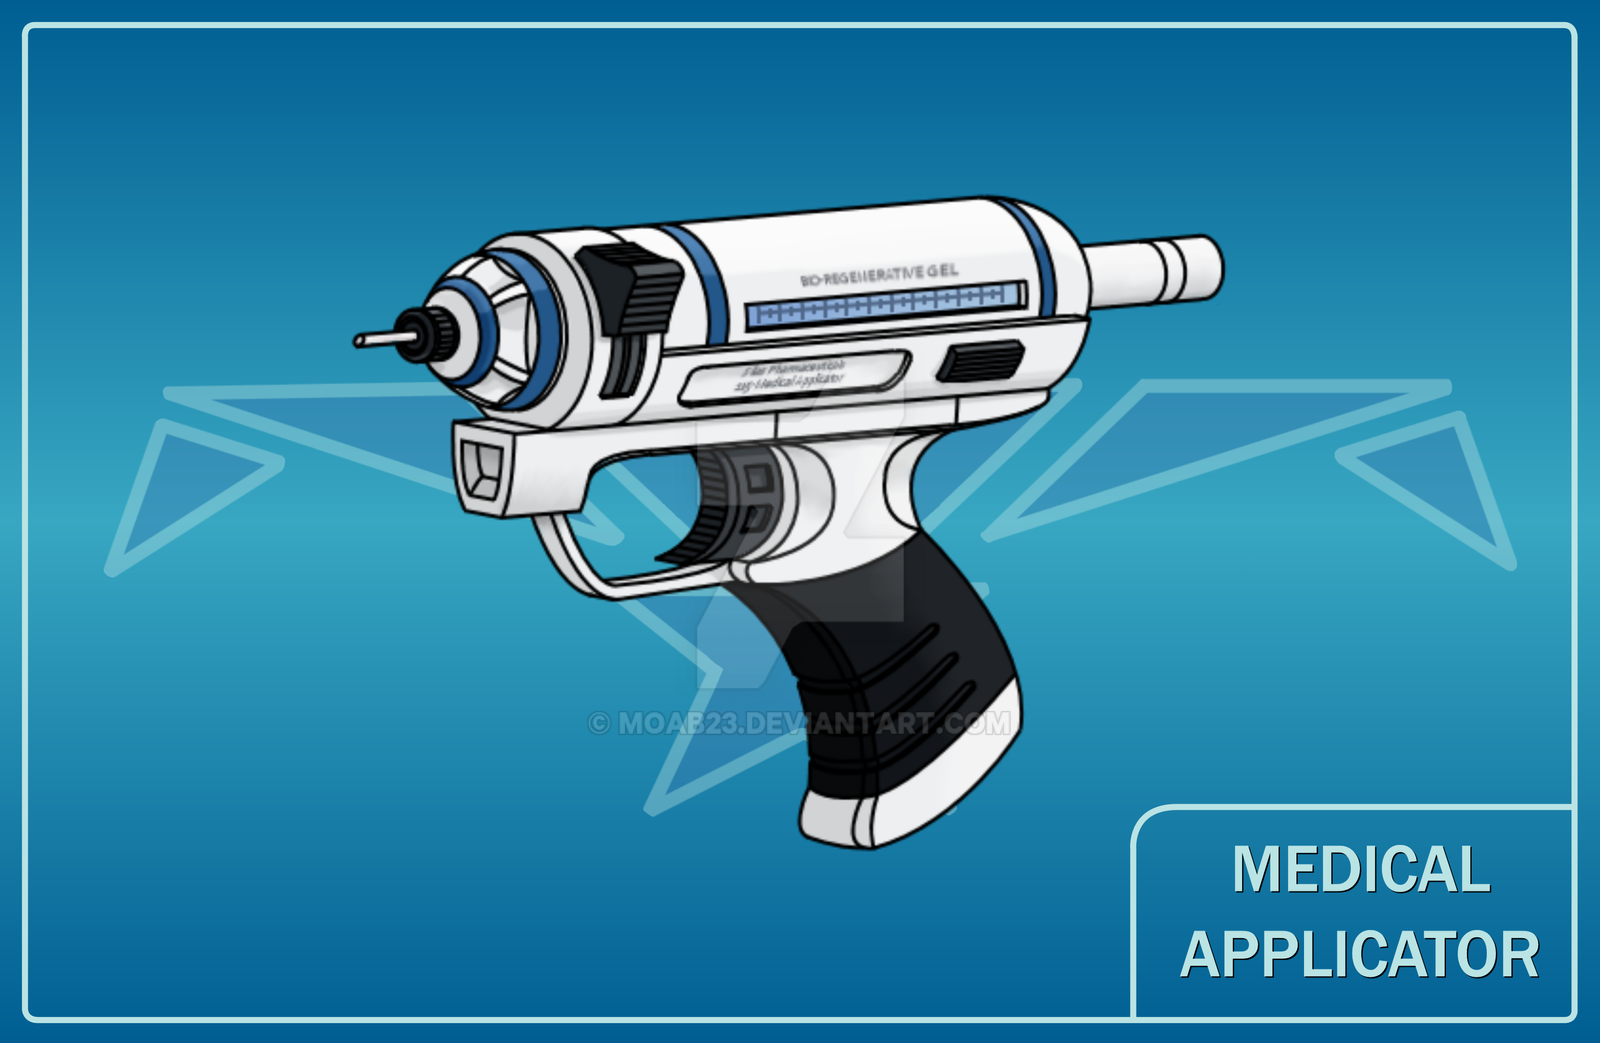 Medical Applicator by MOAB23